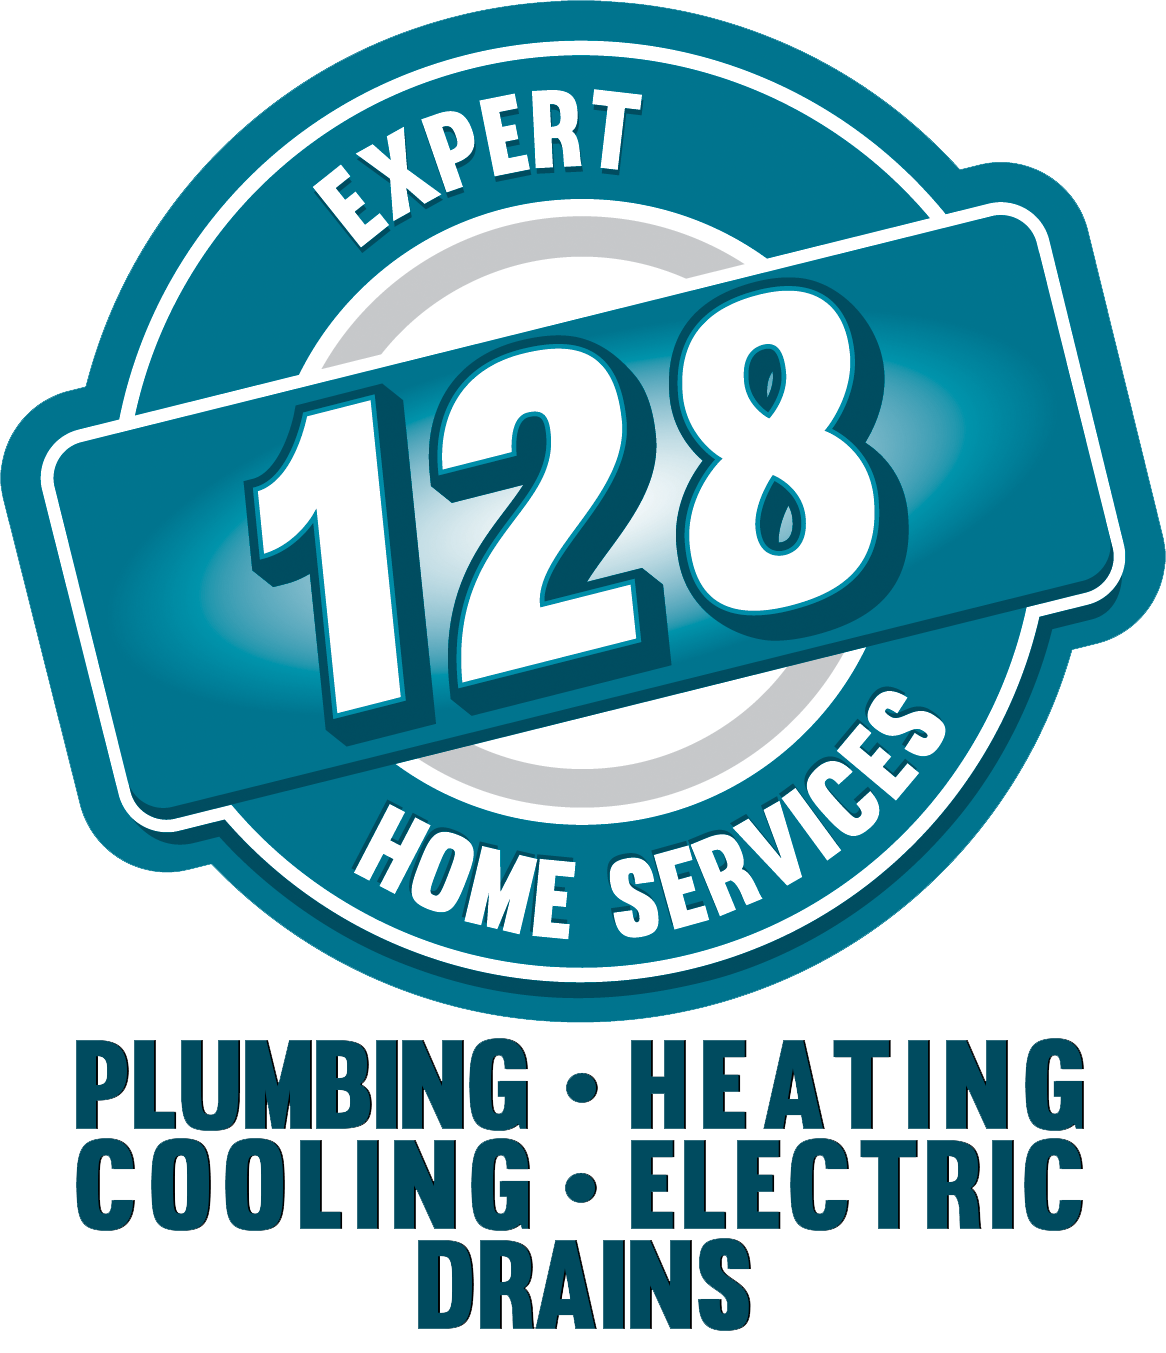 128 Plumbing, Heating & Coolingreviews - Wakefield, MA 01880. 1 ...